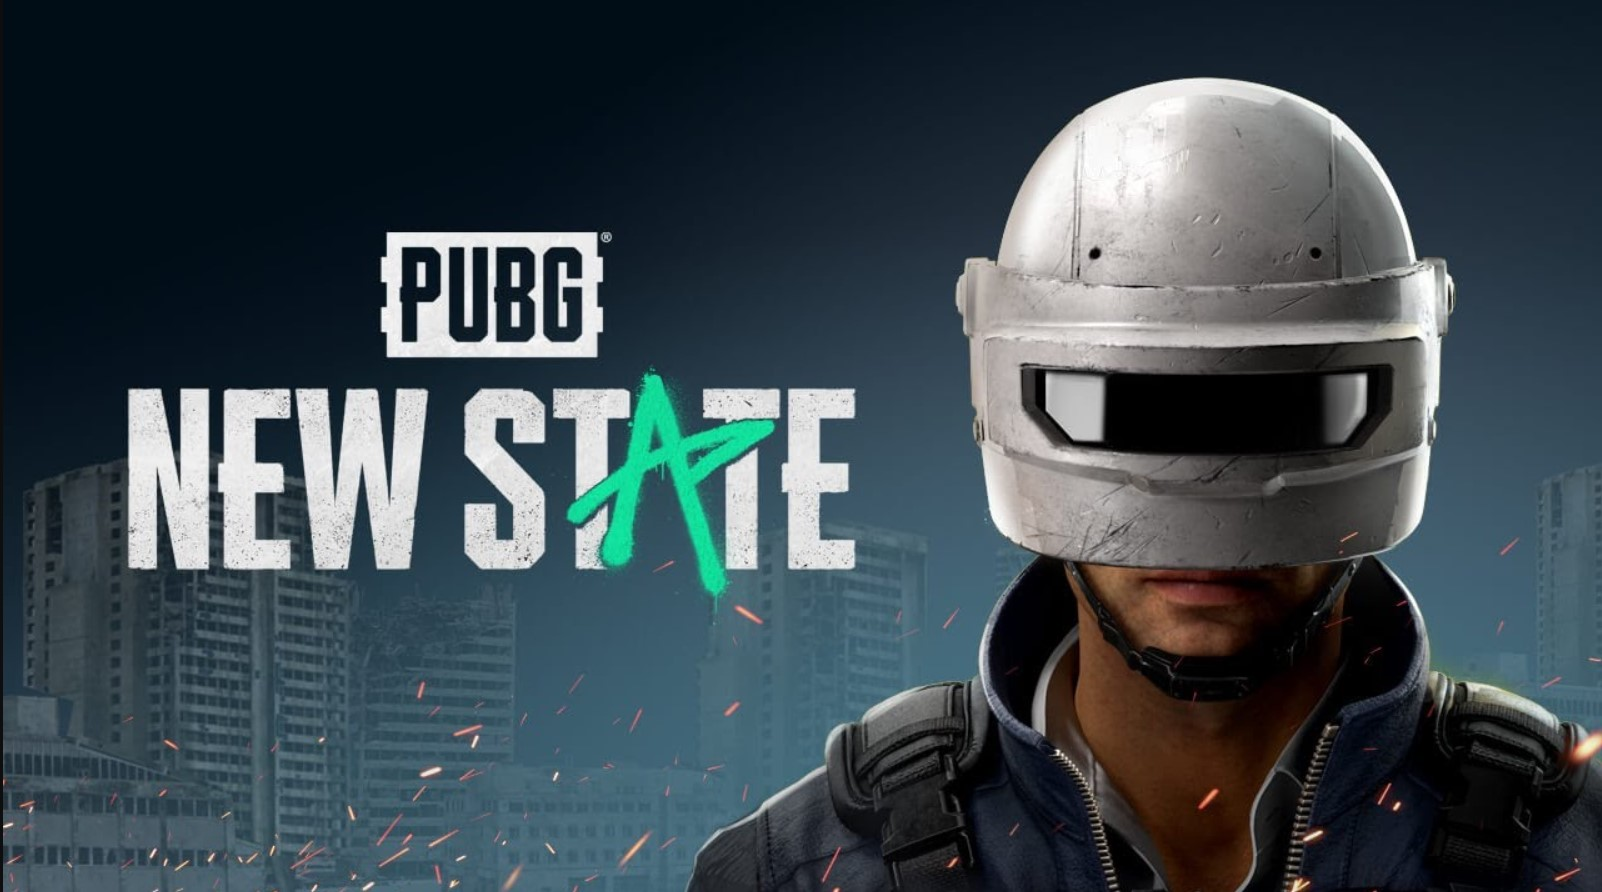 PUBG NEW STATE free download full version for pc with crack